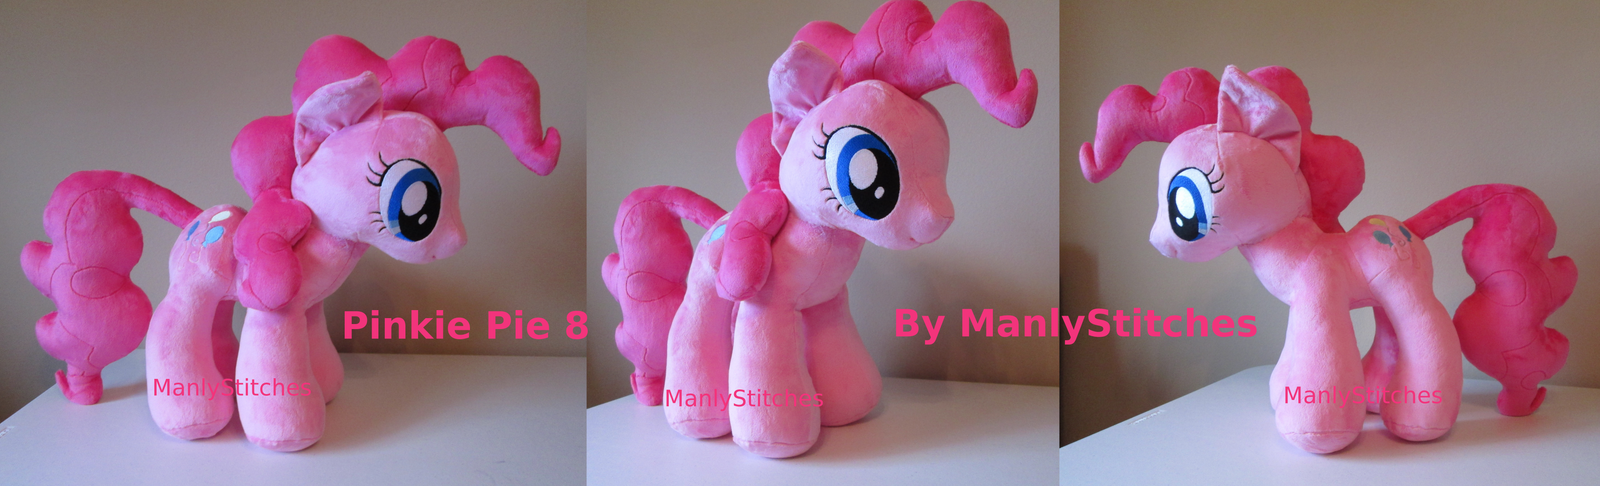 Pinkie Pie #8 (20 inch) by ManlyStitches